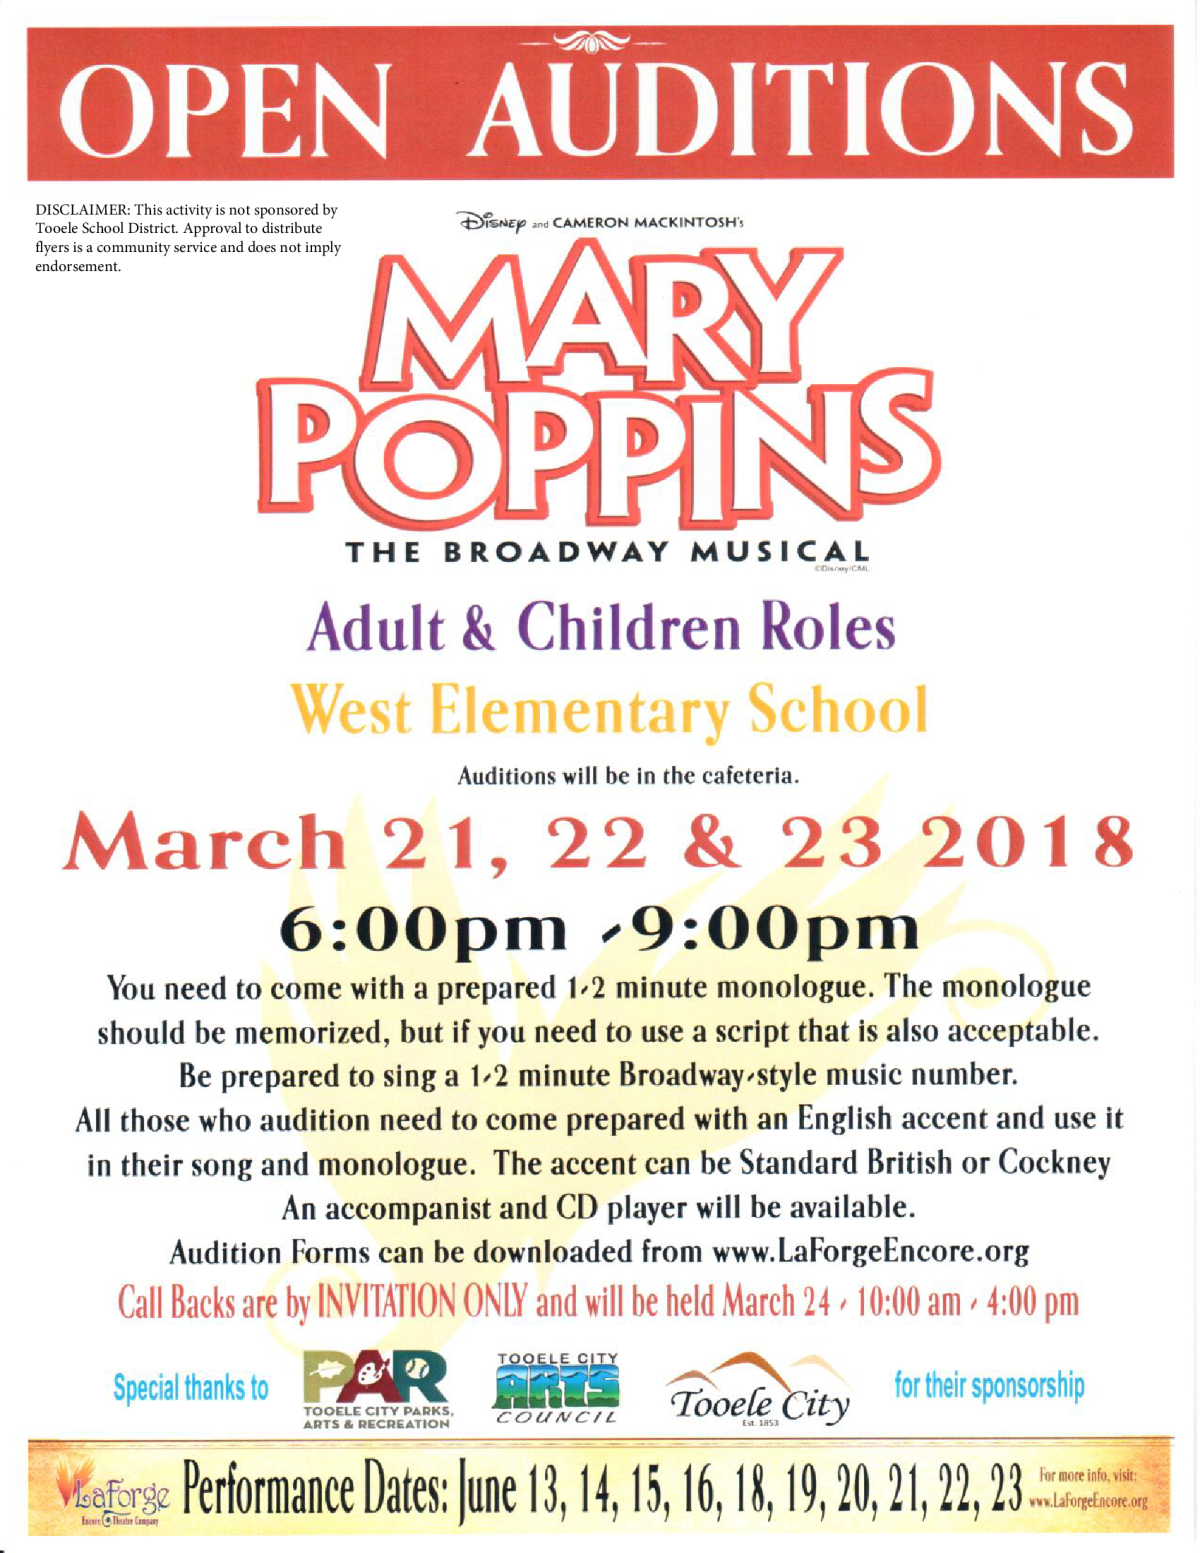 Mary Poppins Open Auditions 2018